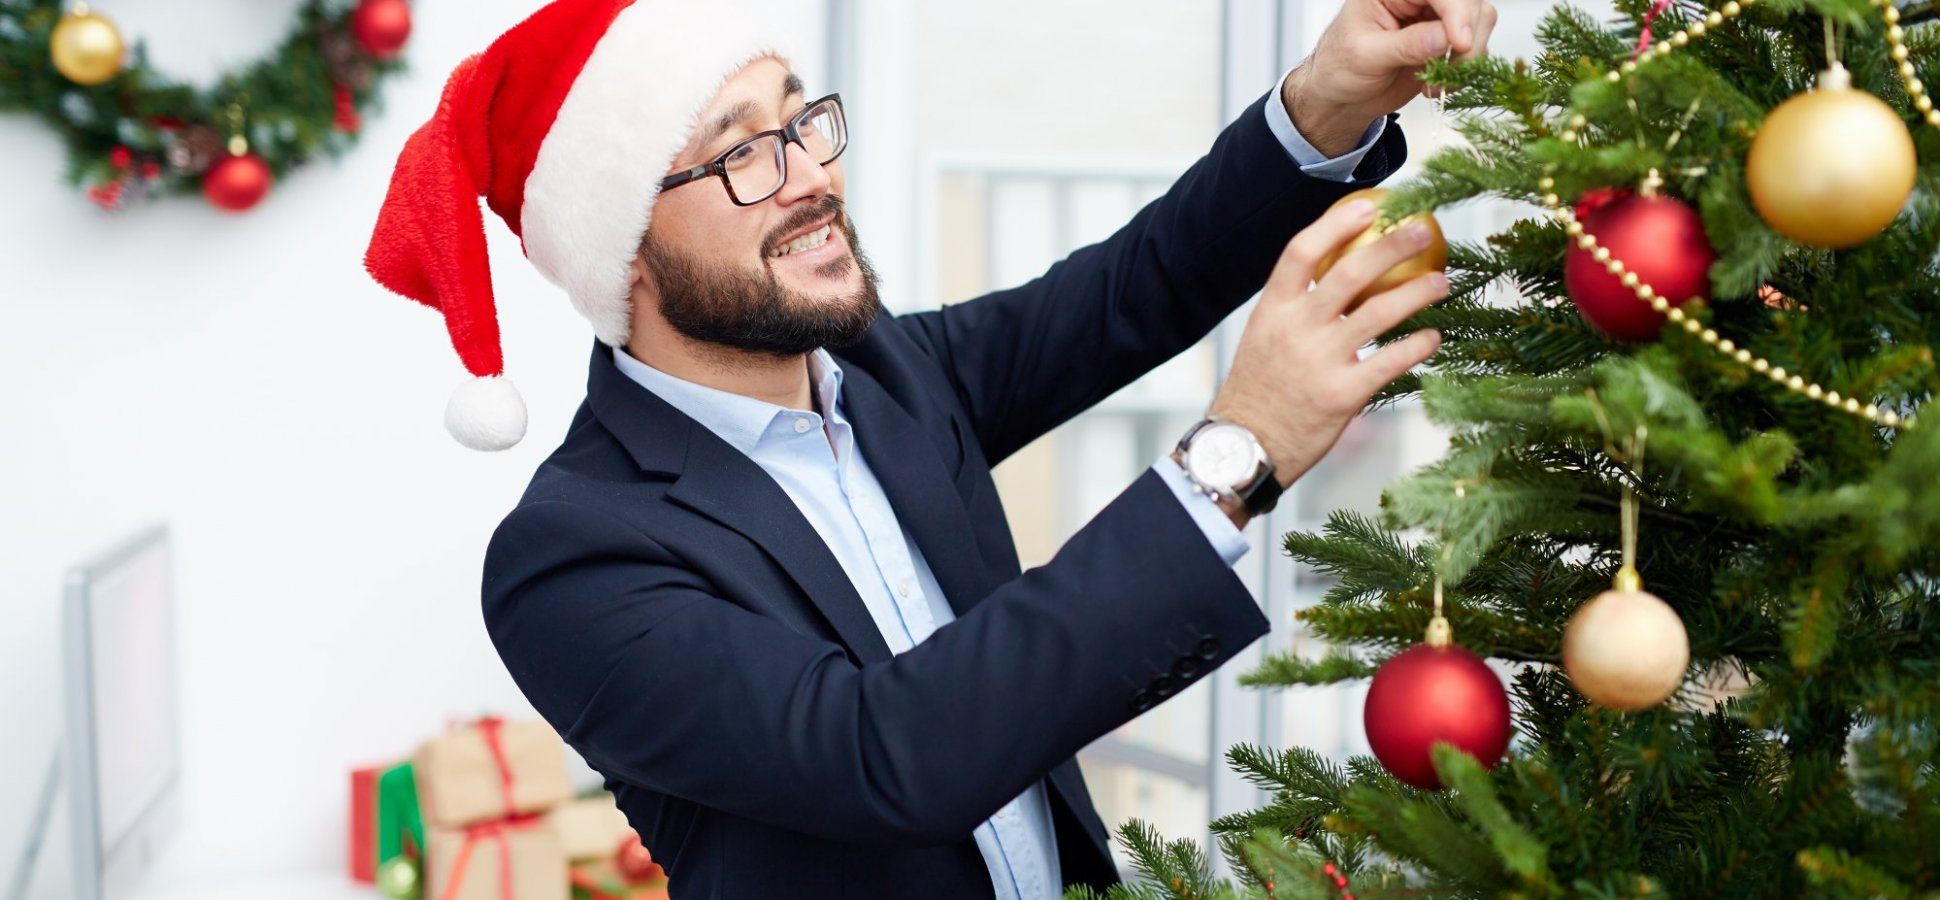 Can I Refuse to Put Up Holiday Decorations at Work?   Inc.com